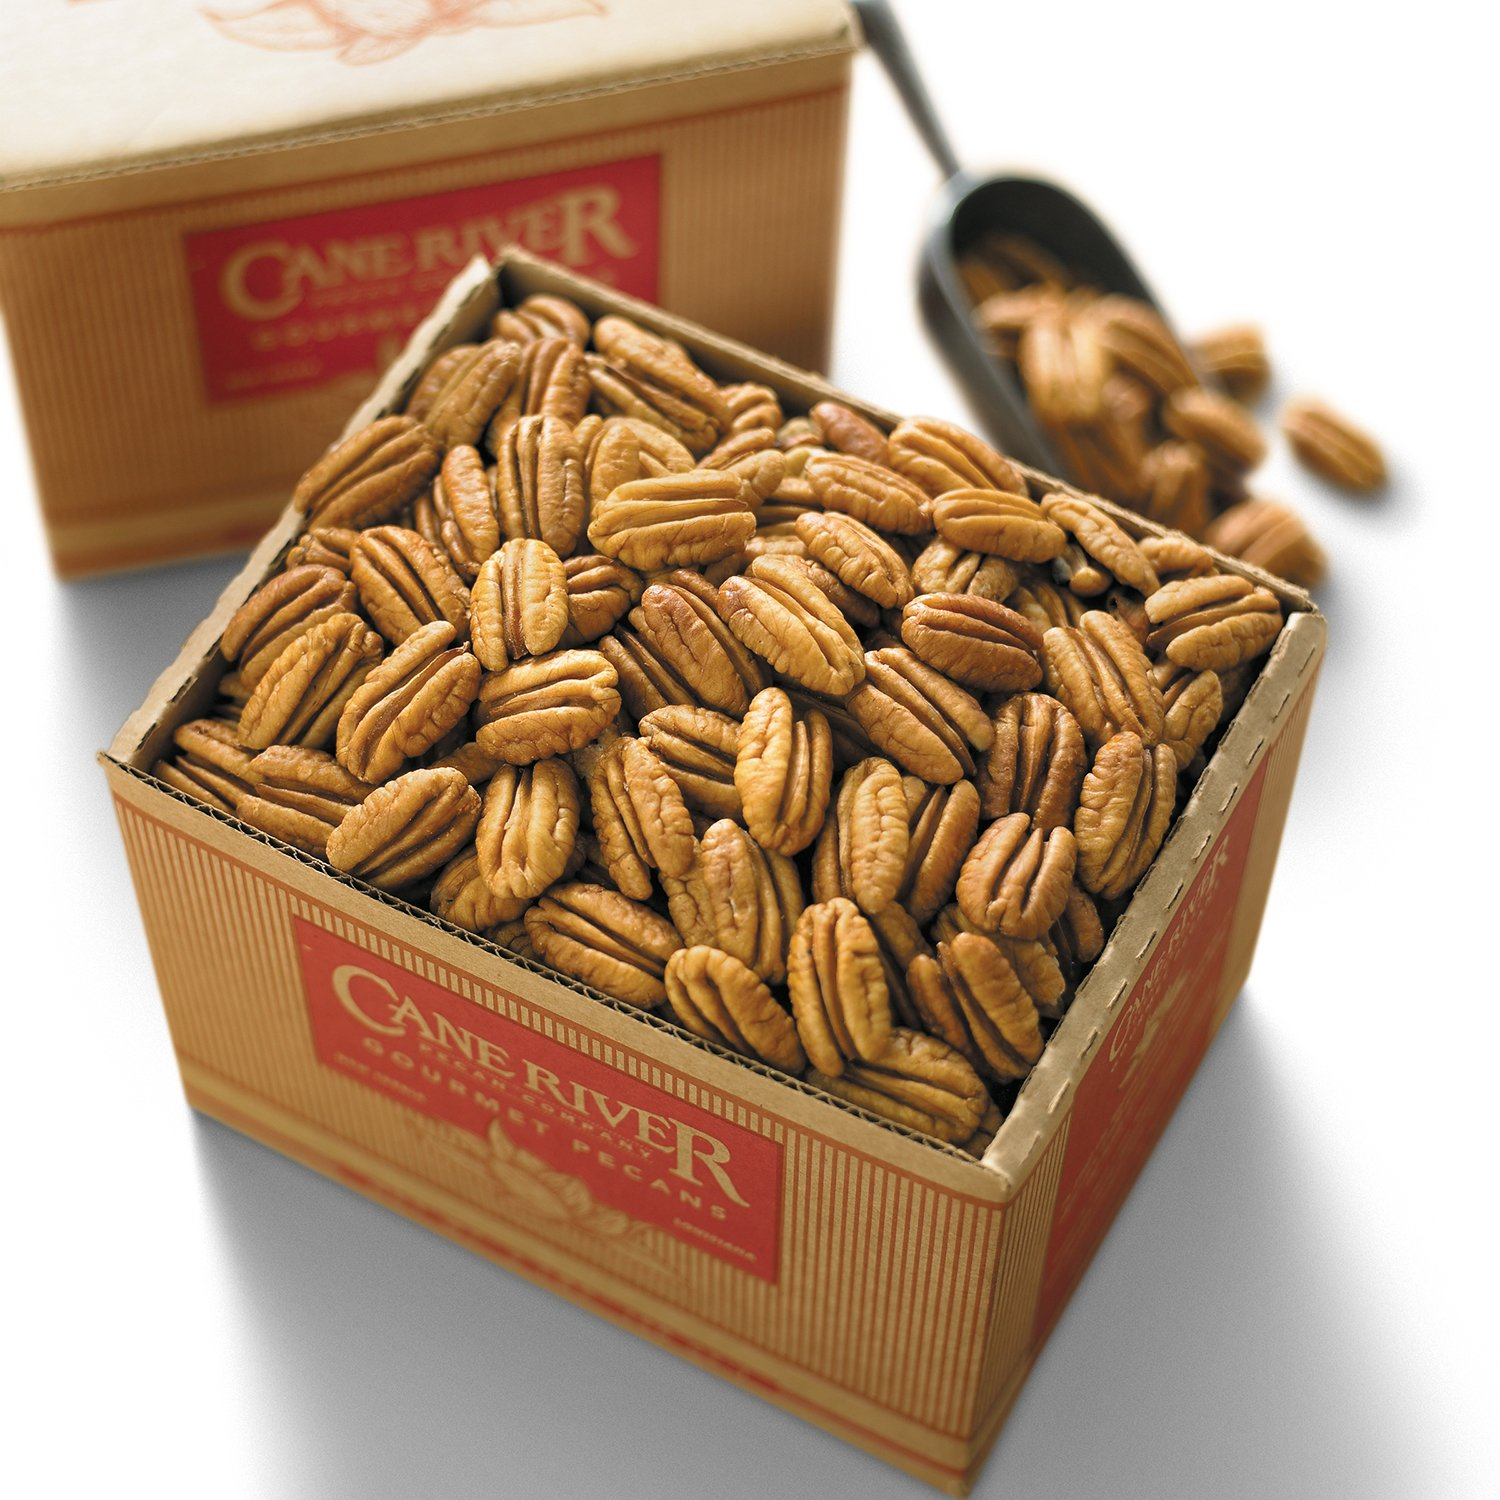 Mammoth Desireable Pecan Halves, 3 pound box - Cane River Pecan Co.